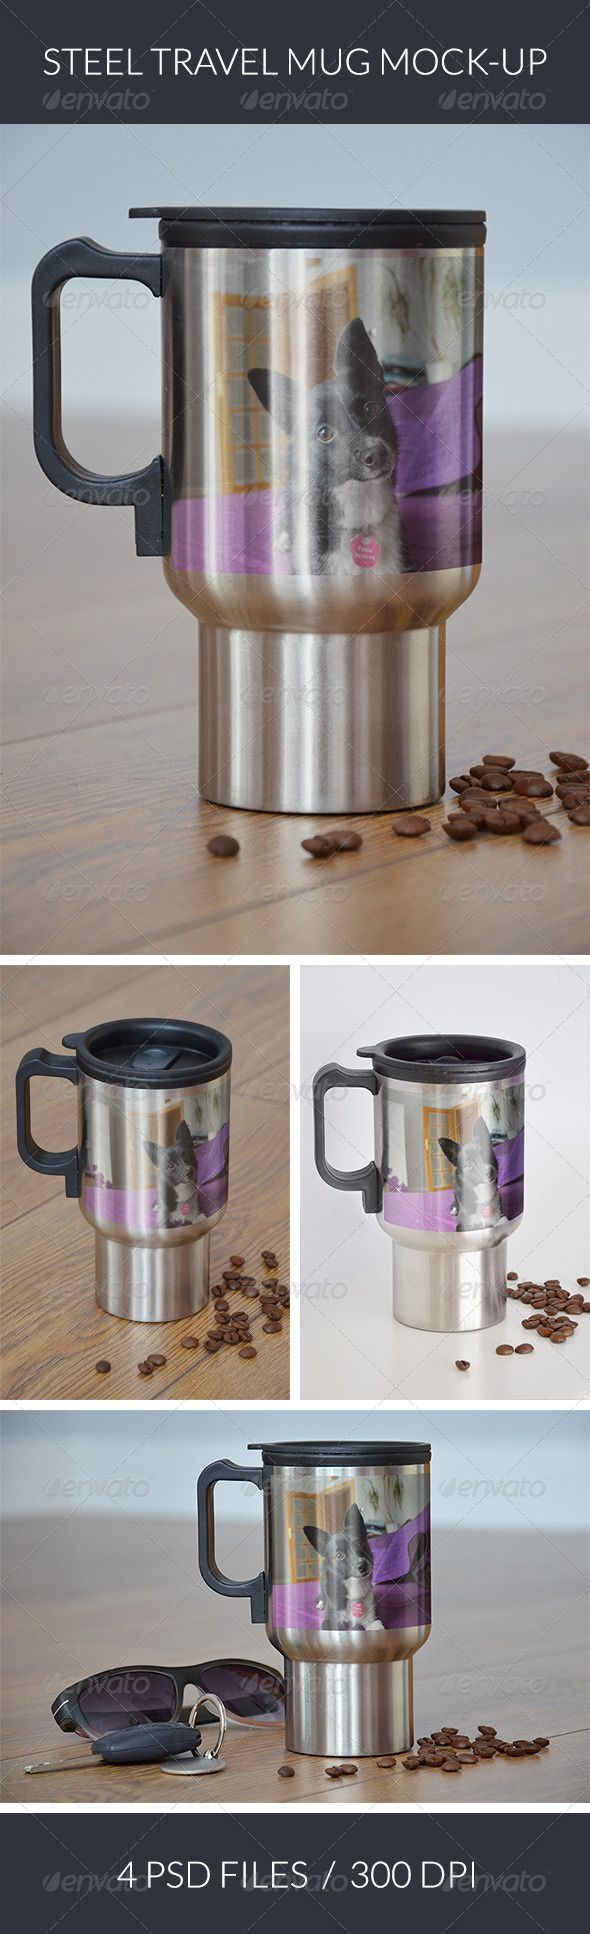 The photorealistic mockup of steel travel mug with your photo/design. 4 PSD files, for different views.  - 300 dpi - 3000×2000px - 4 PSD files - Smart Objects - Instruction included